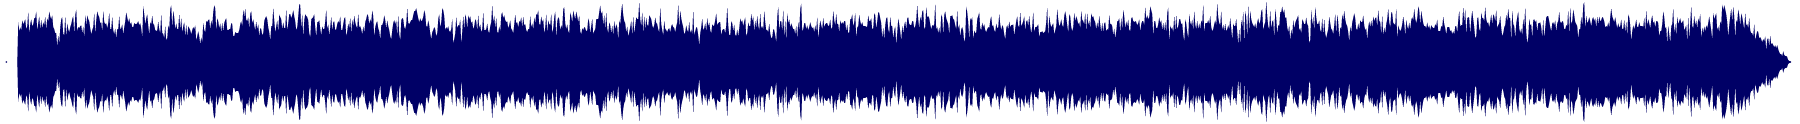 waveform of track #71010